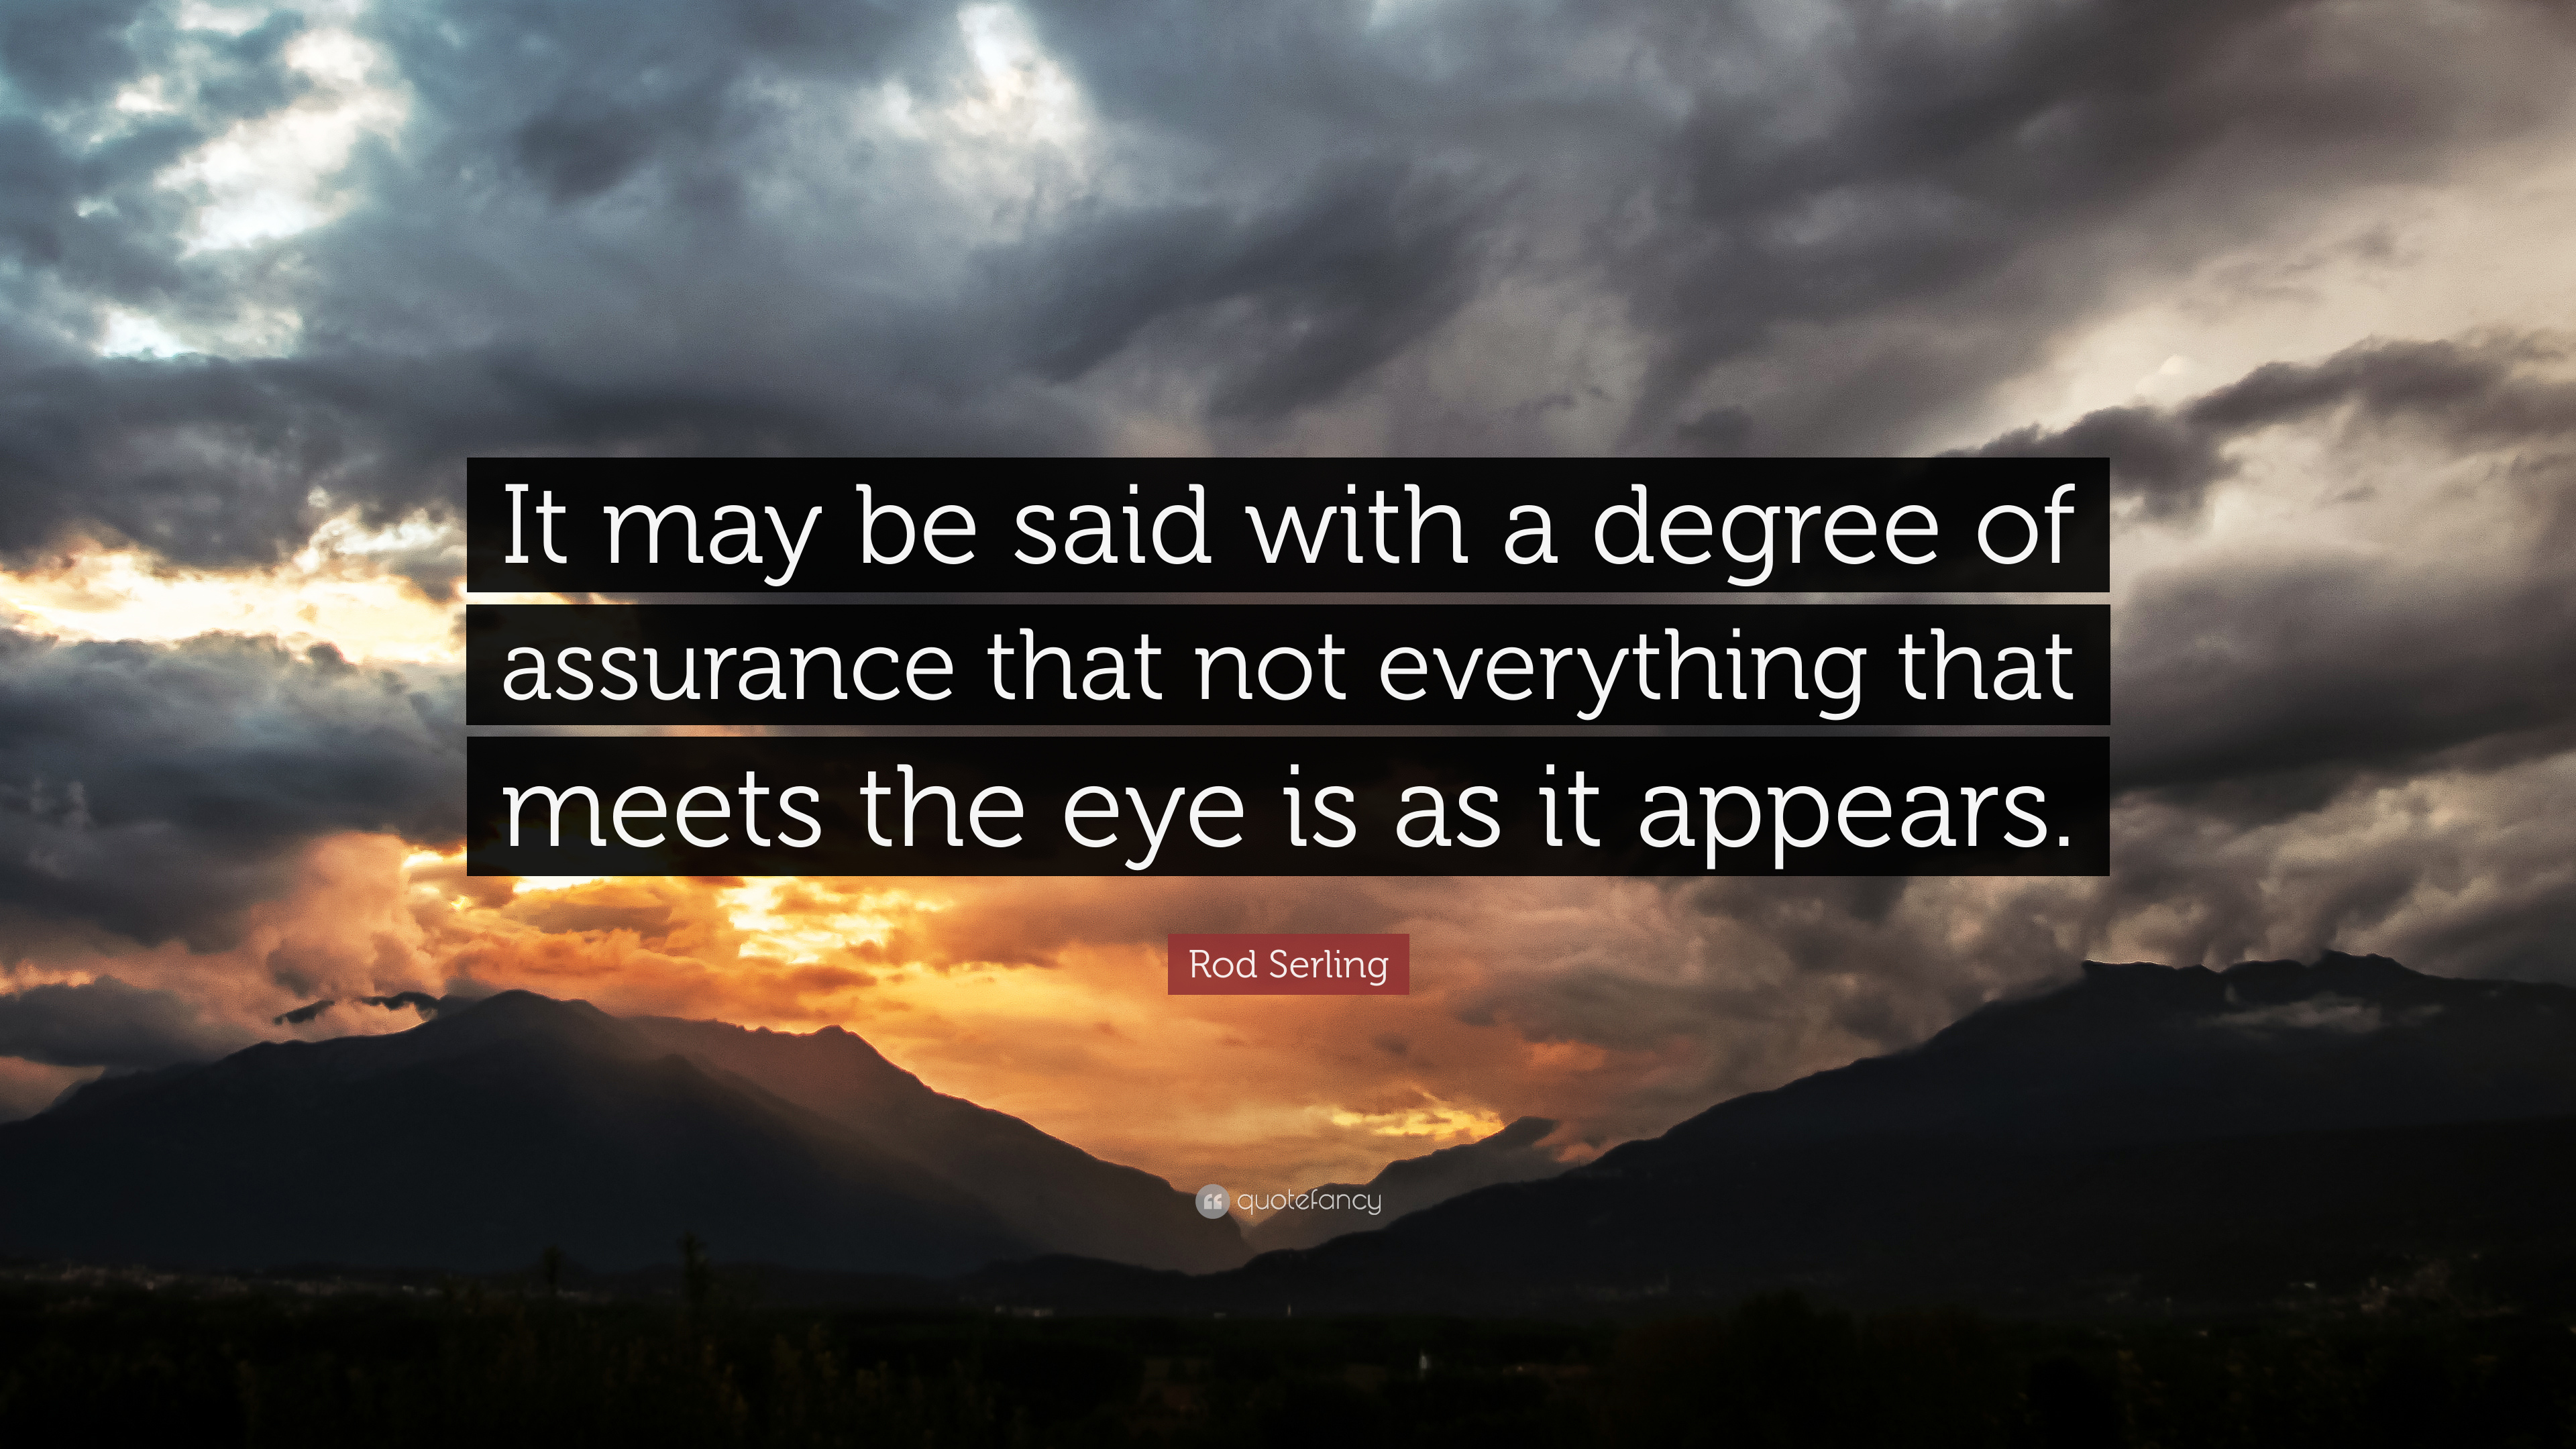 Rod Serling Quote It May Be Said With A Degree Of Assurance That